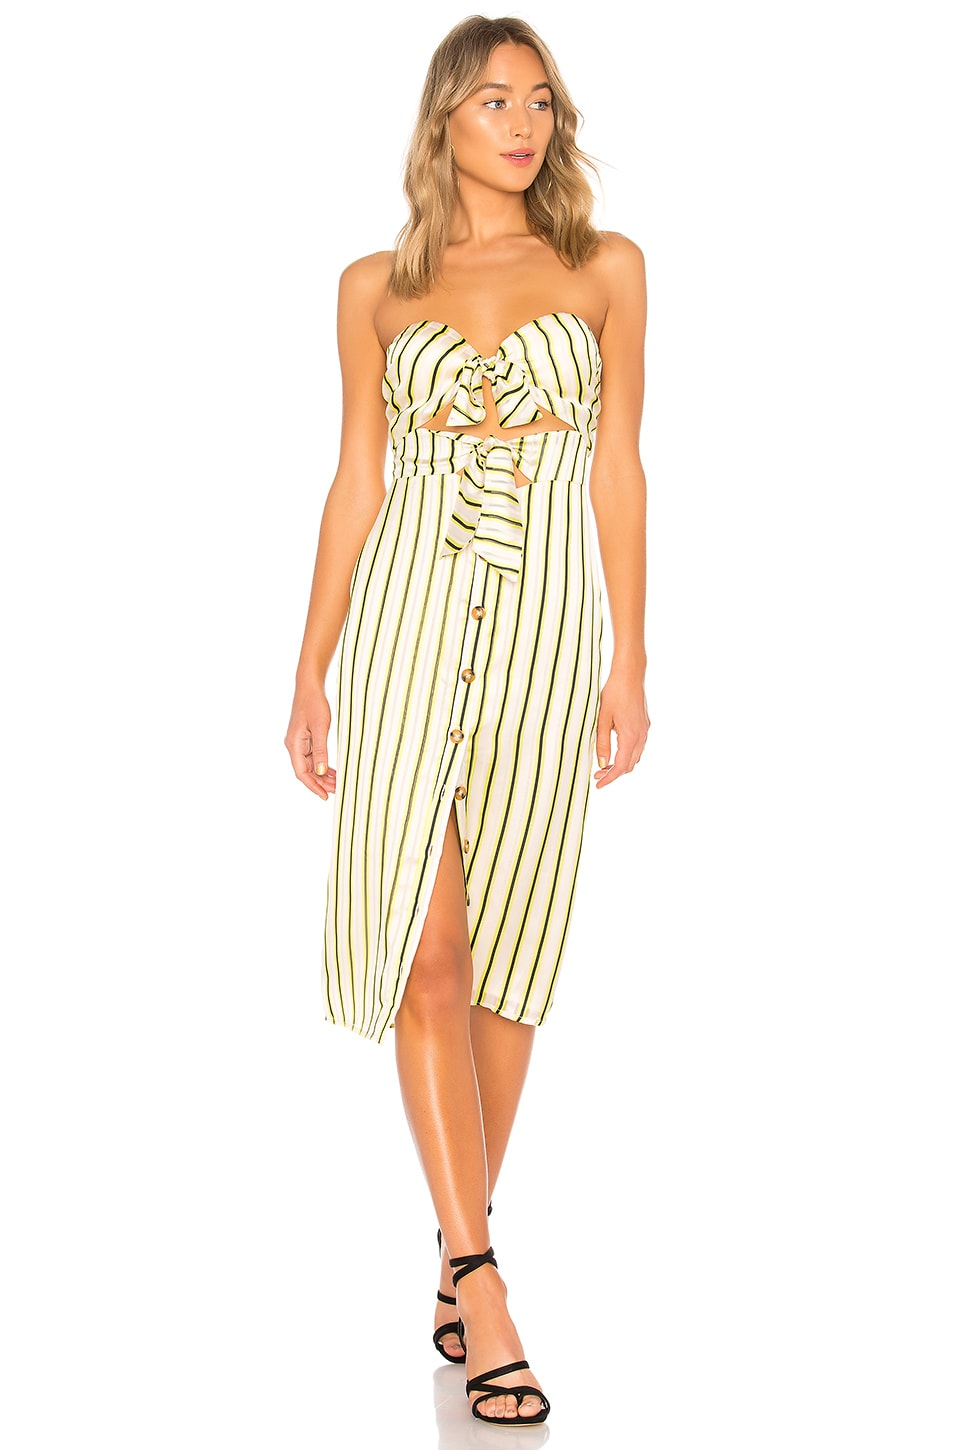 House of Harlow 1960 x REVOLVE Colette Dress in Yellow Pop Stripe